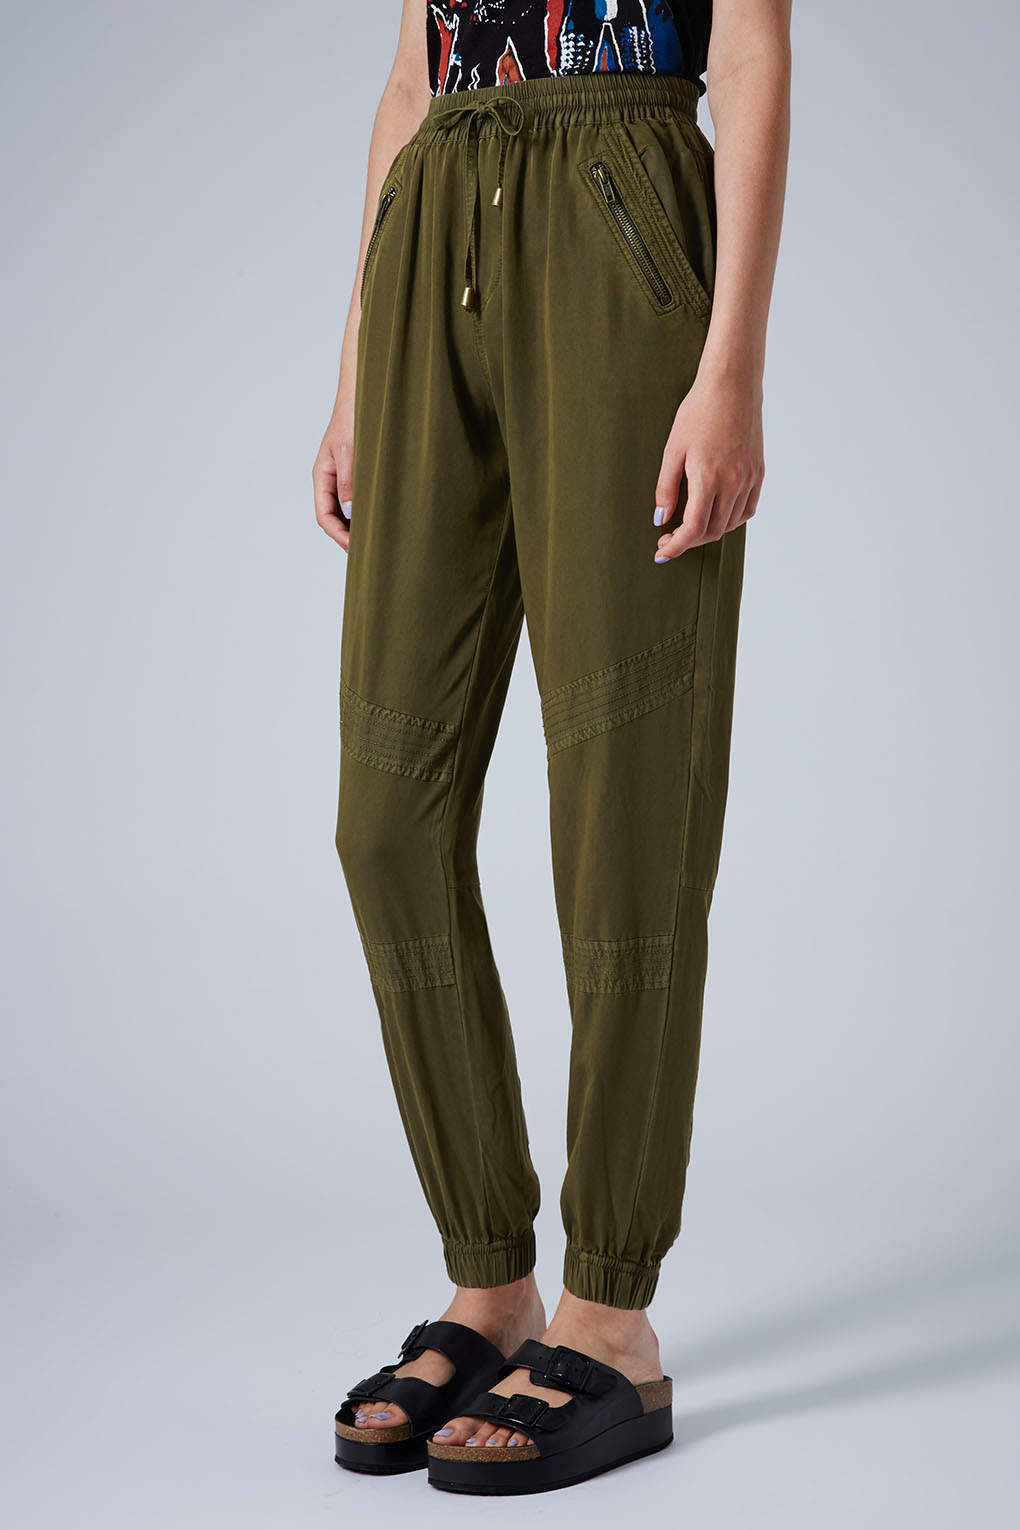 Awesome Khaki Joggers For Girls Joggers For Girls Related Keywords